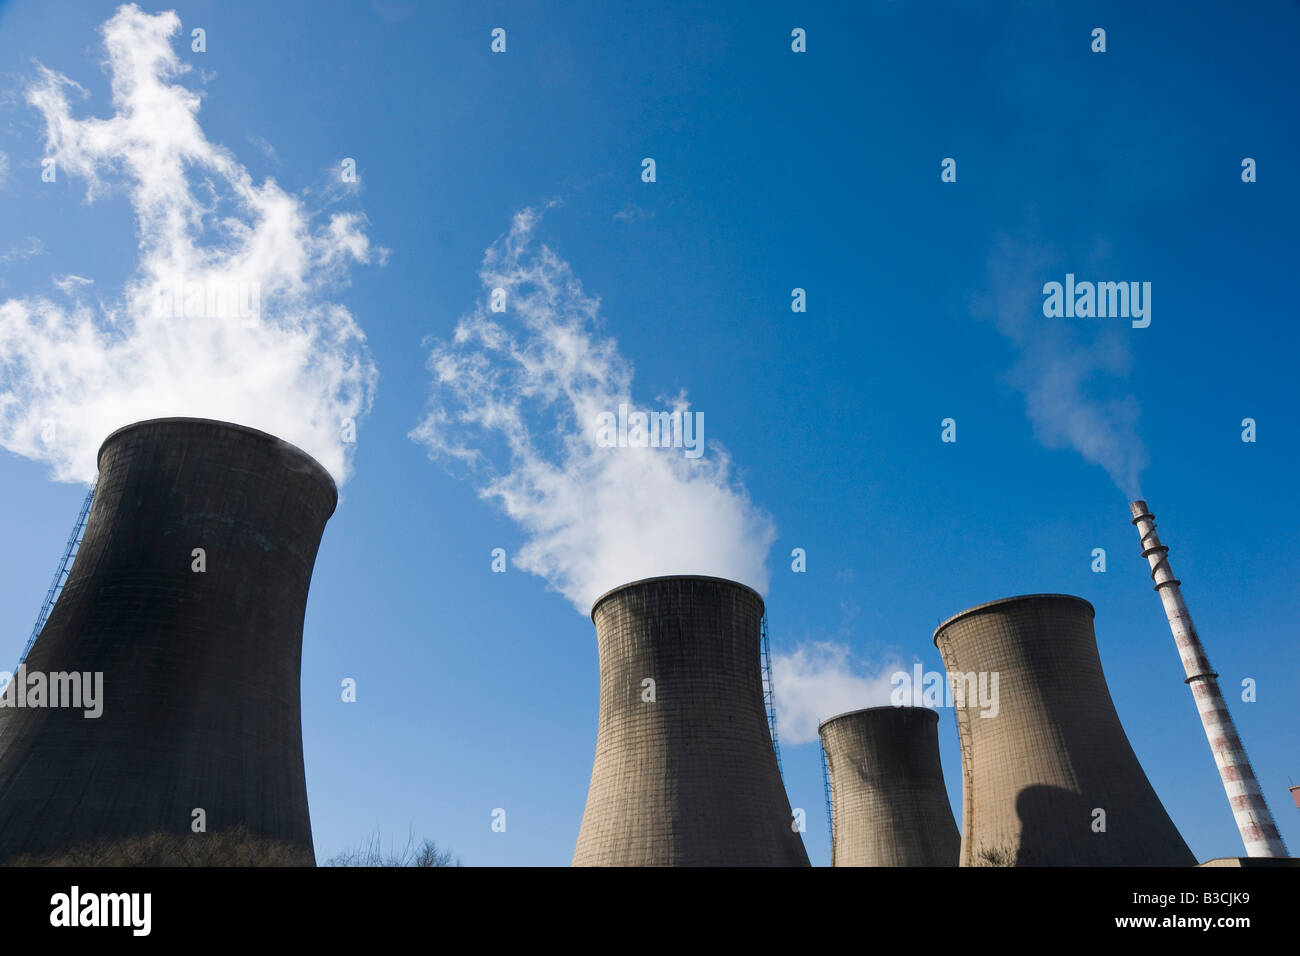 coal fired power station with cooling towers releasing steam into atmosphere - Stock Image